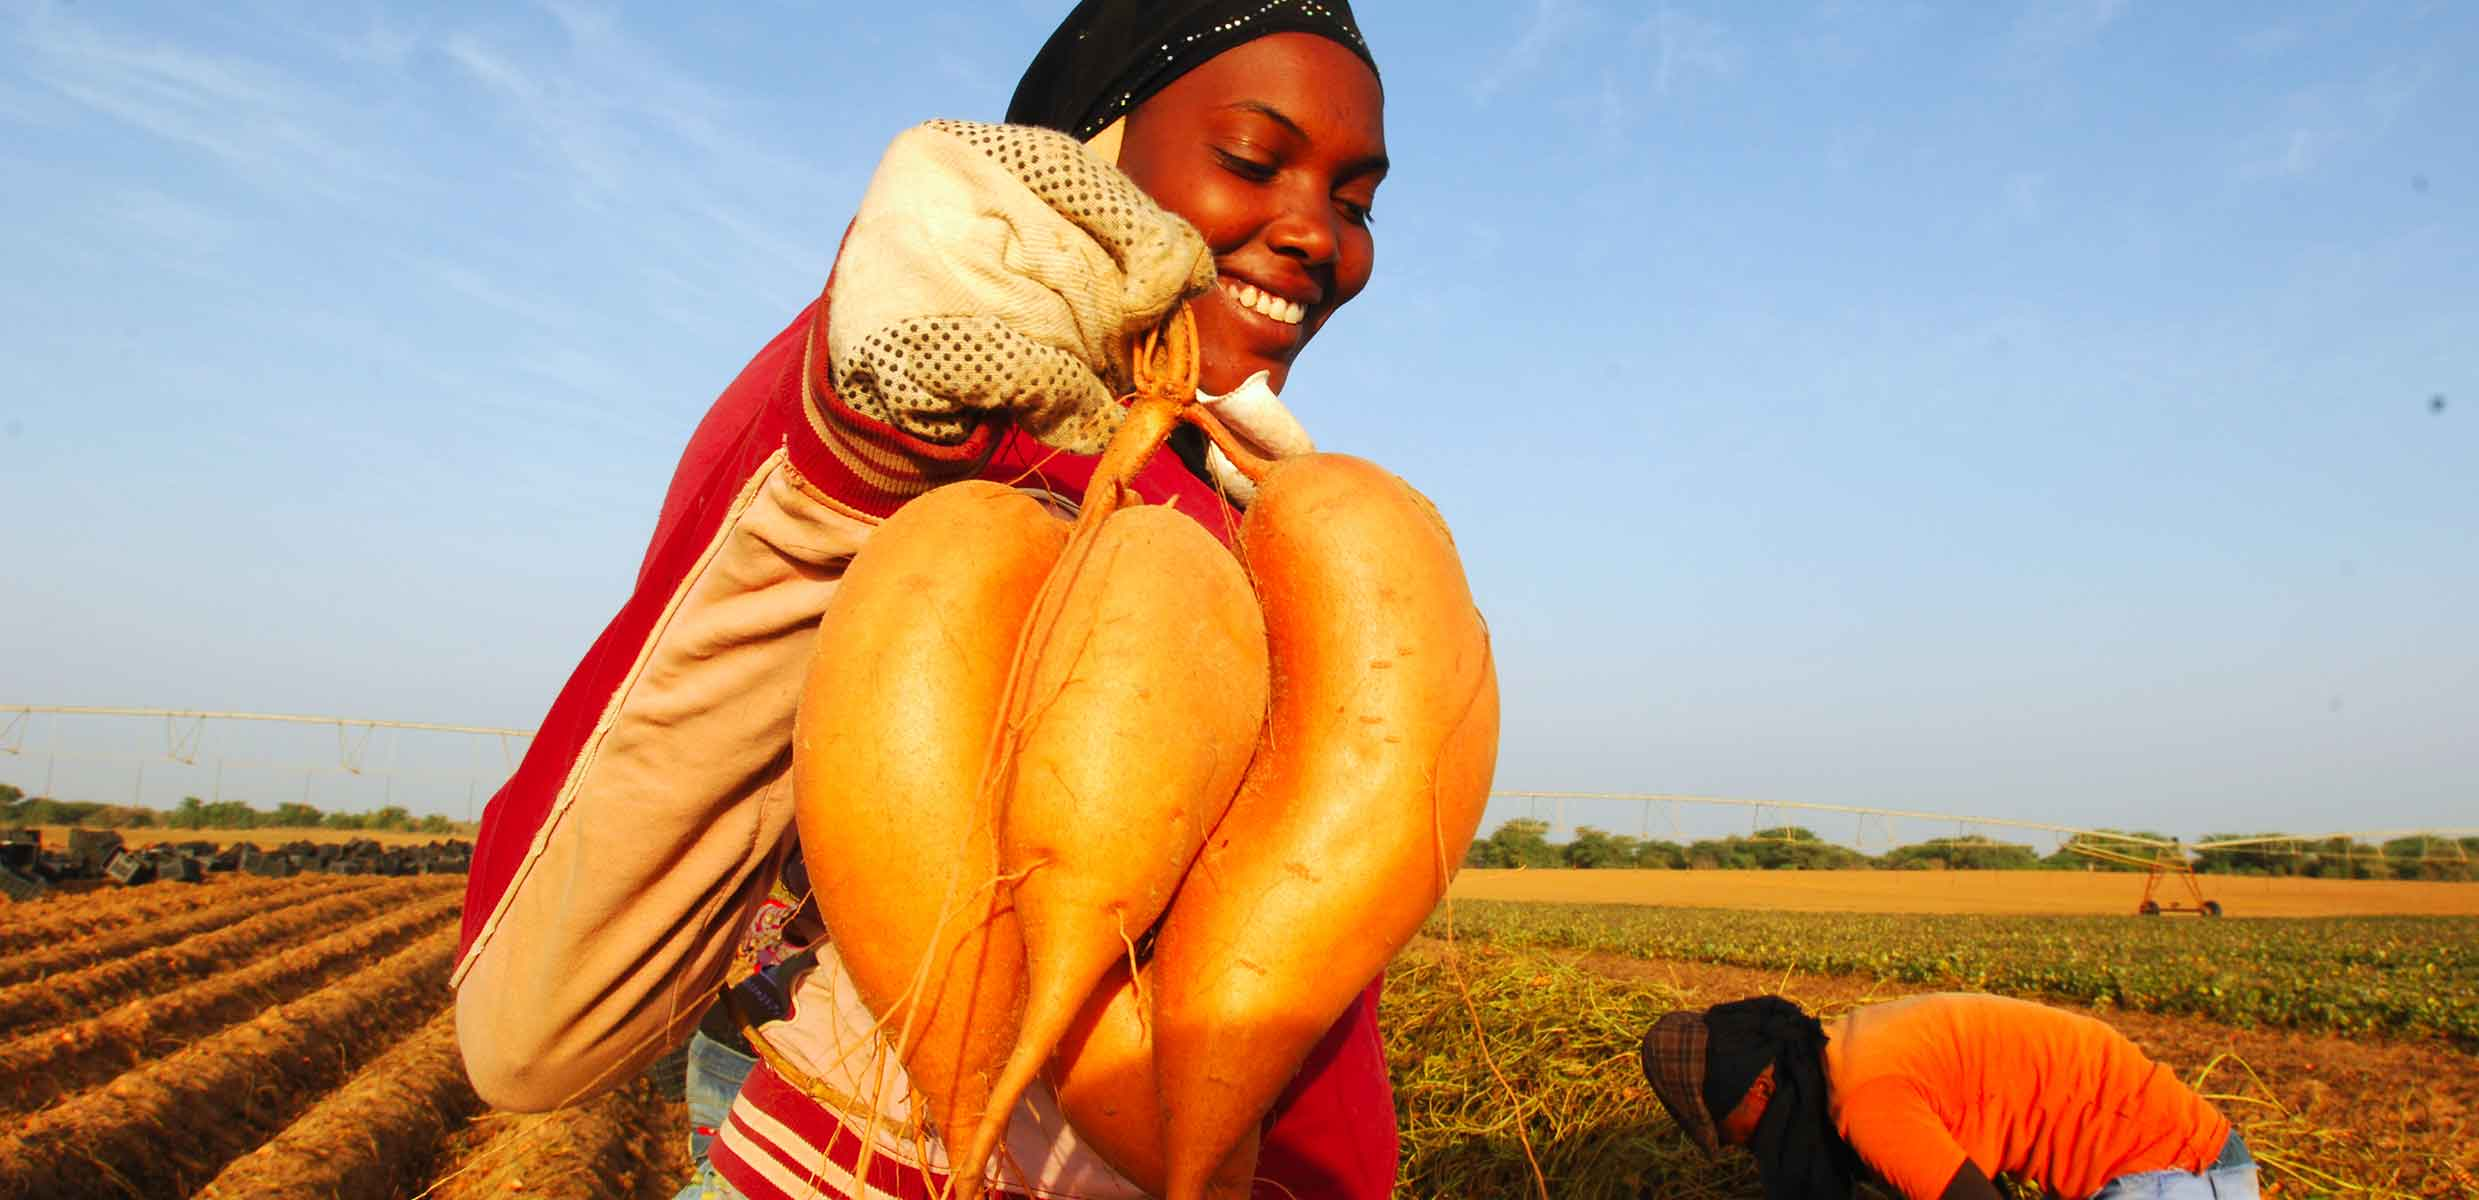 Photograph of Sweet Potatoes being harvested by hand on the Barfoots SCL farm in Senegal